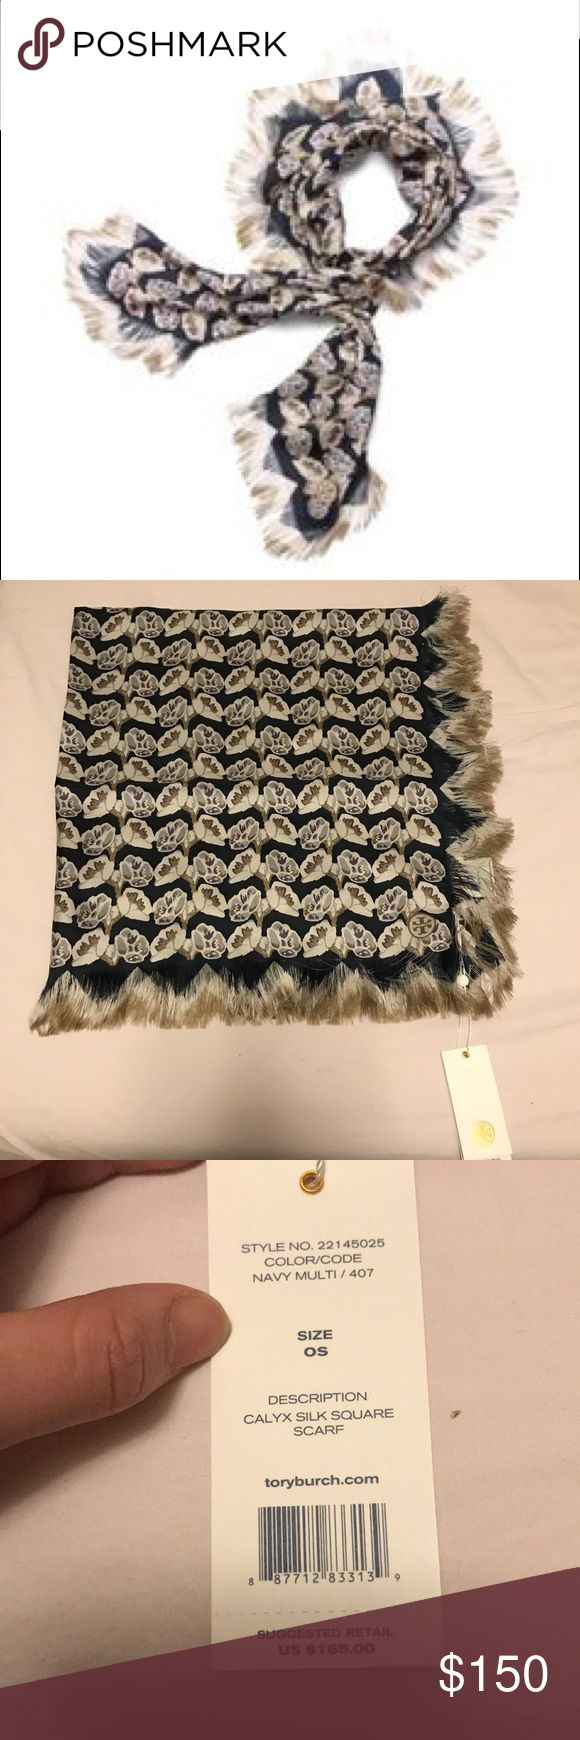 Brand new CALYX FLOWER SILK SQUARE SCARF Brand new with tag Tory Burch Accessories Scarves & Wraps